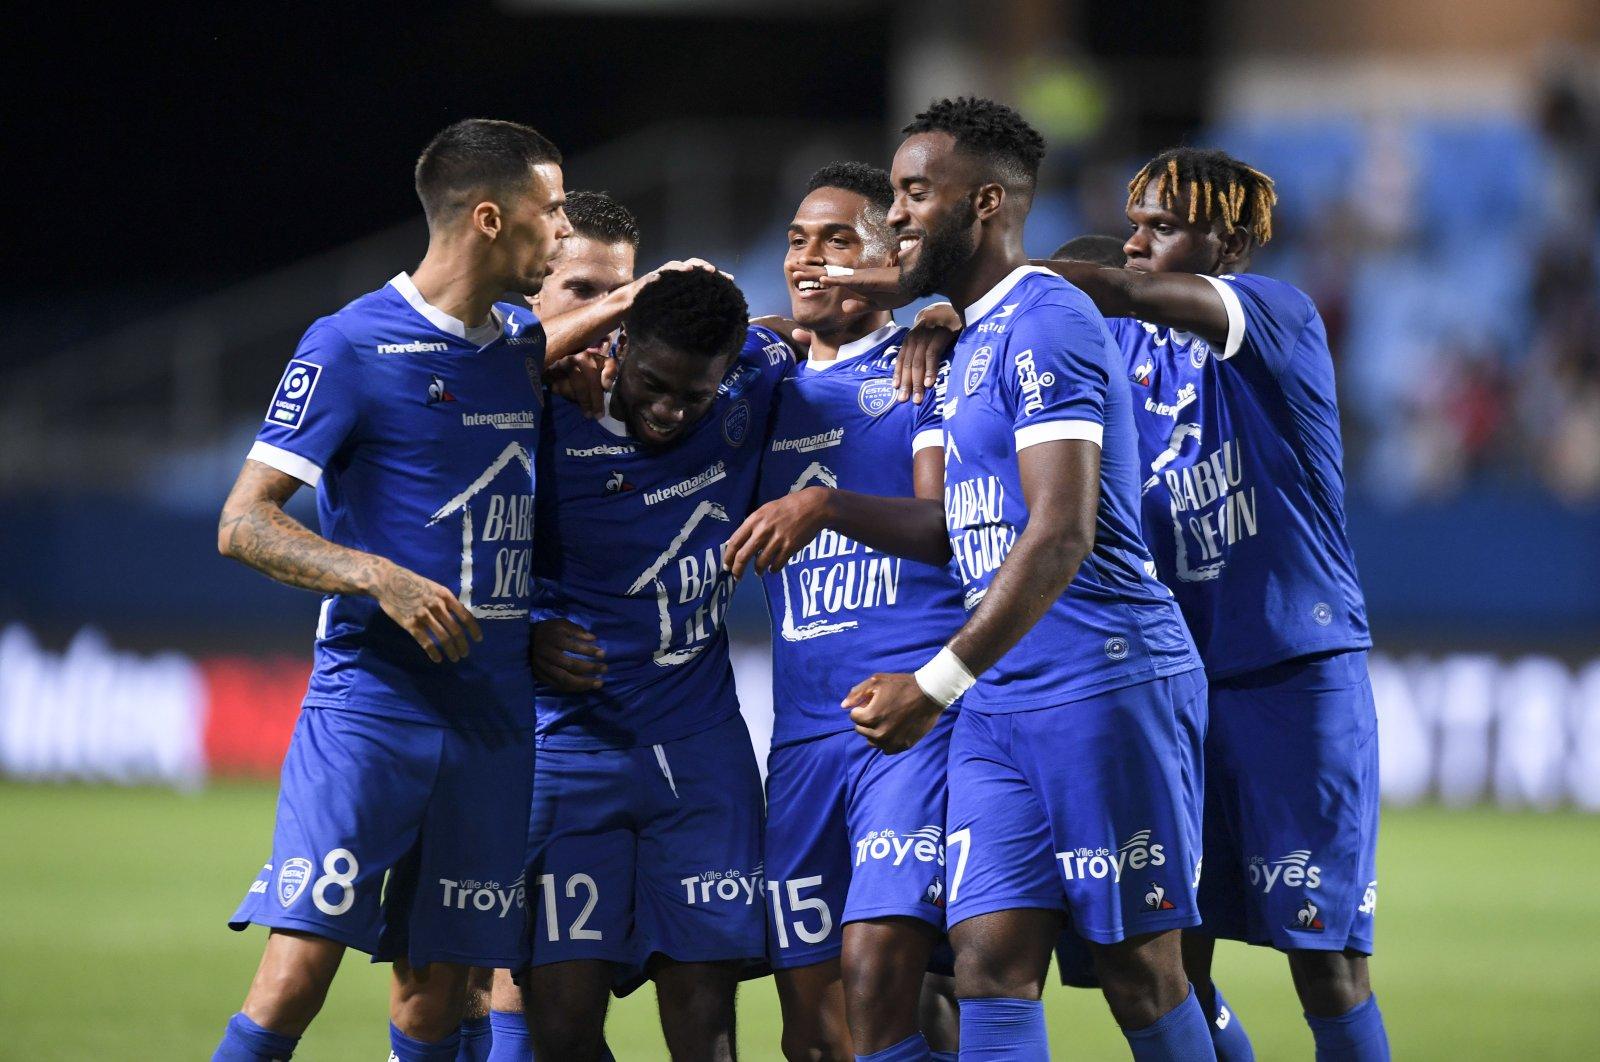 Troyes players celebrate a goal during a French Ligue 2 match against Le Havre, in Troyes, France, Aug. 24, 2020. (Reuters Photo)